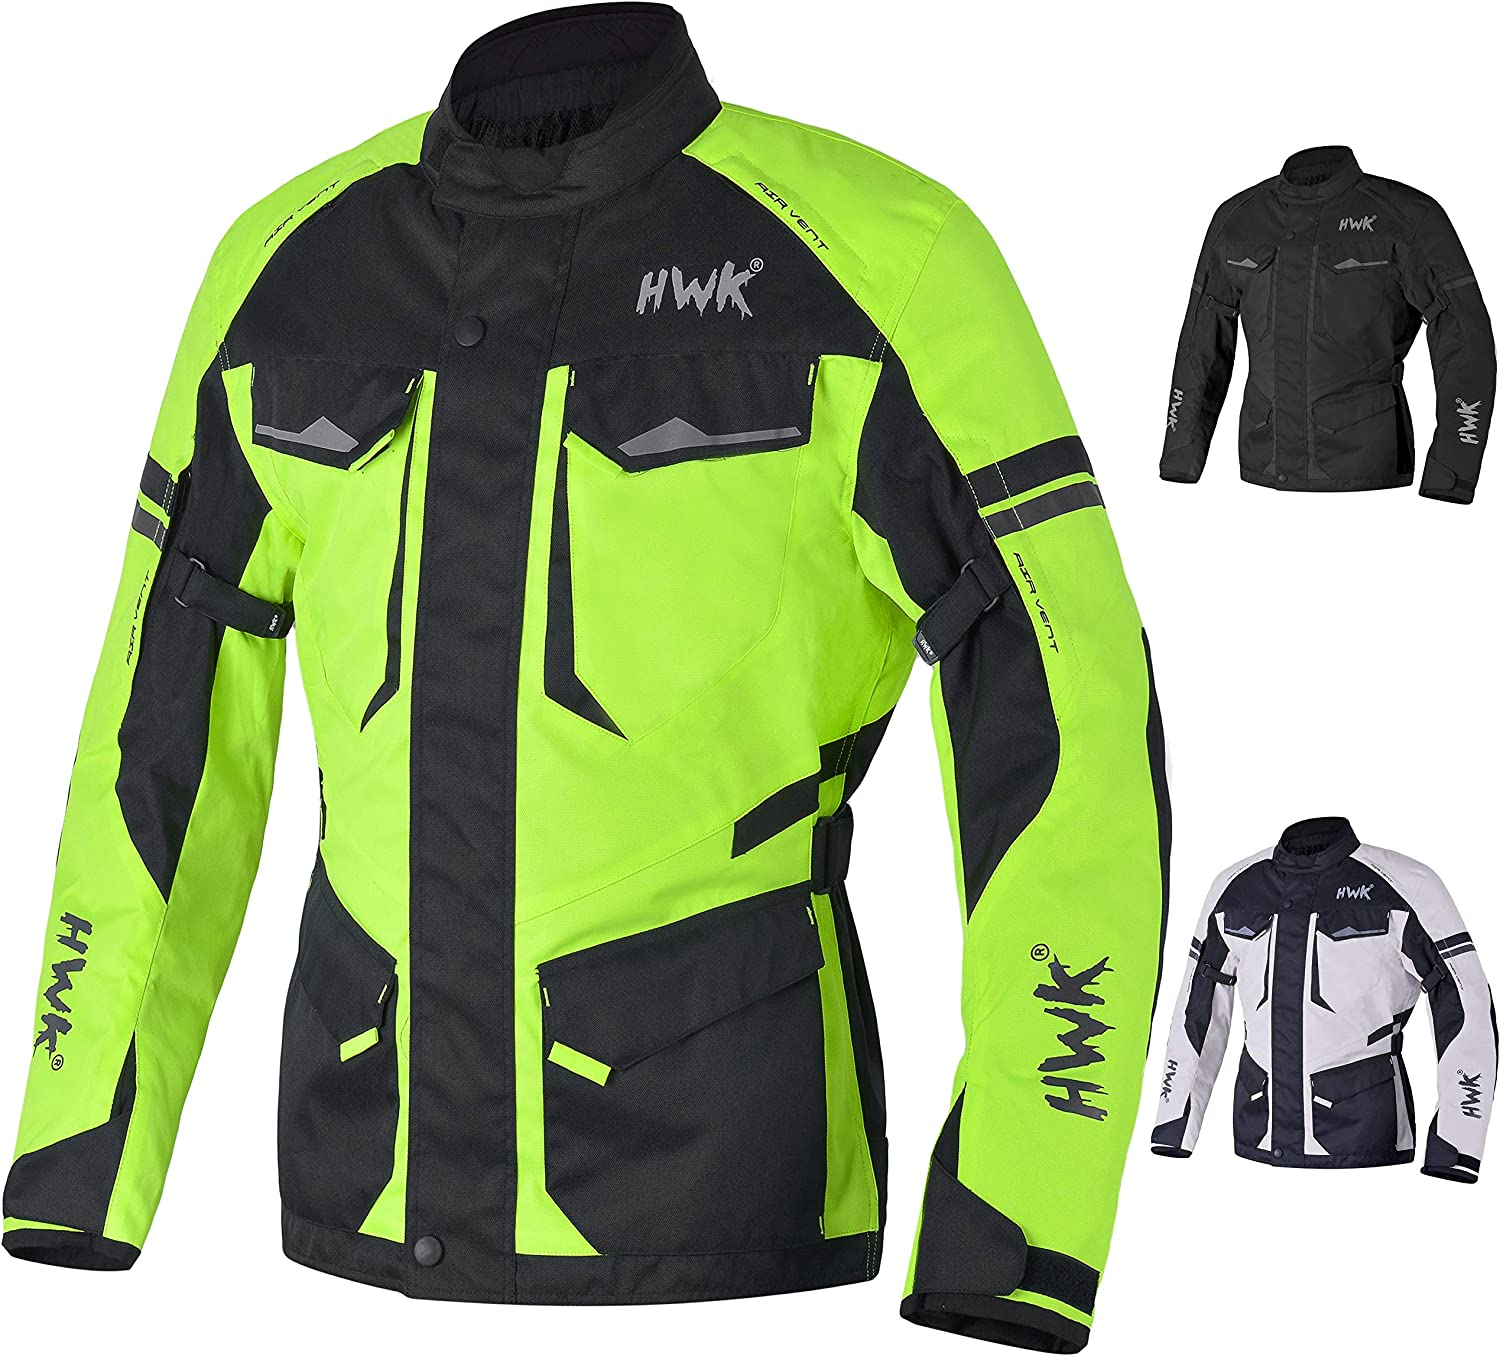 Adventure/Touring Motorcycle Jacket For Men Textile Motorbike CE Armored Waterproof Jackets ADV 4-Season (Hi-Vis Green, S)